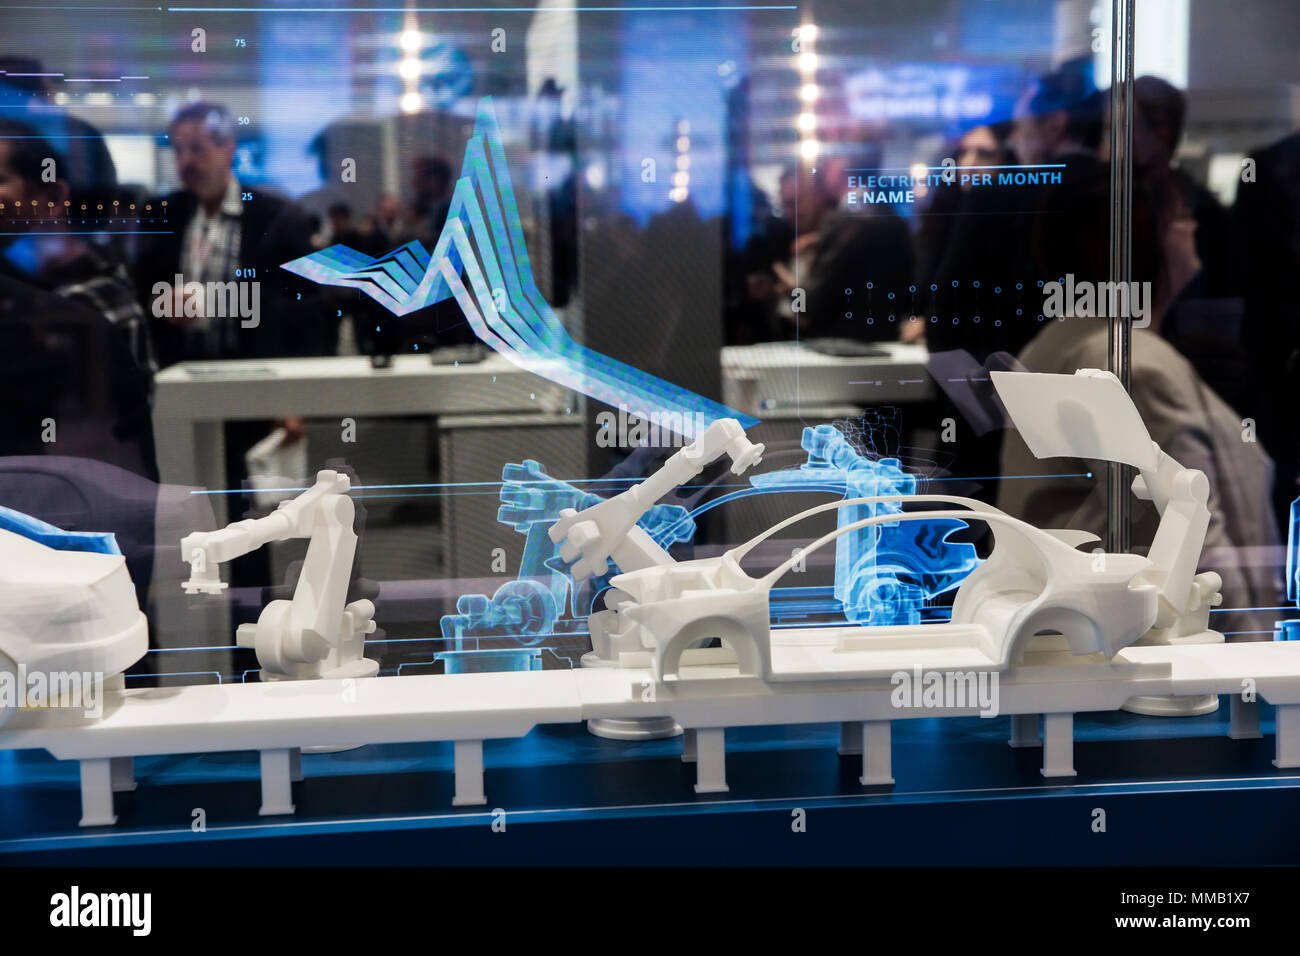 Hannover, Germany - April, 2018: Simulating of car manufacturing by robots, digital twin of the production on Siemens stand on Messe fair in Hannover, - Stock Image